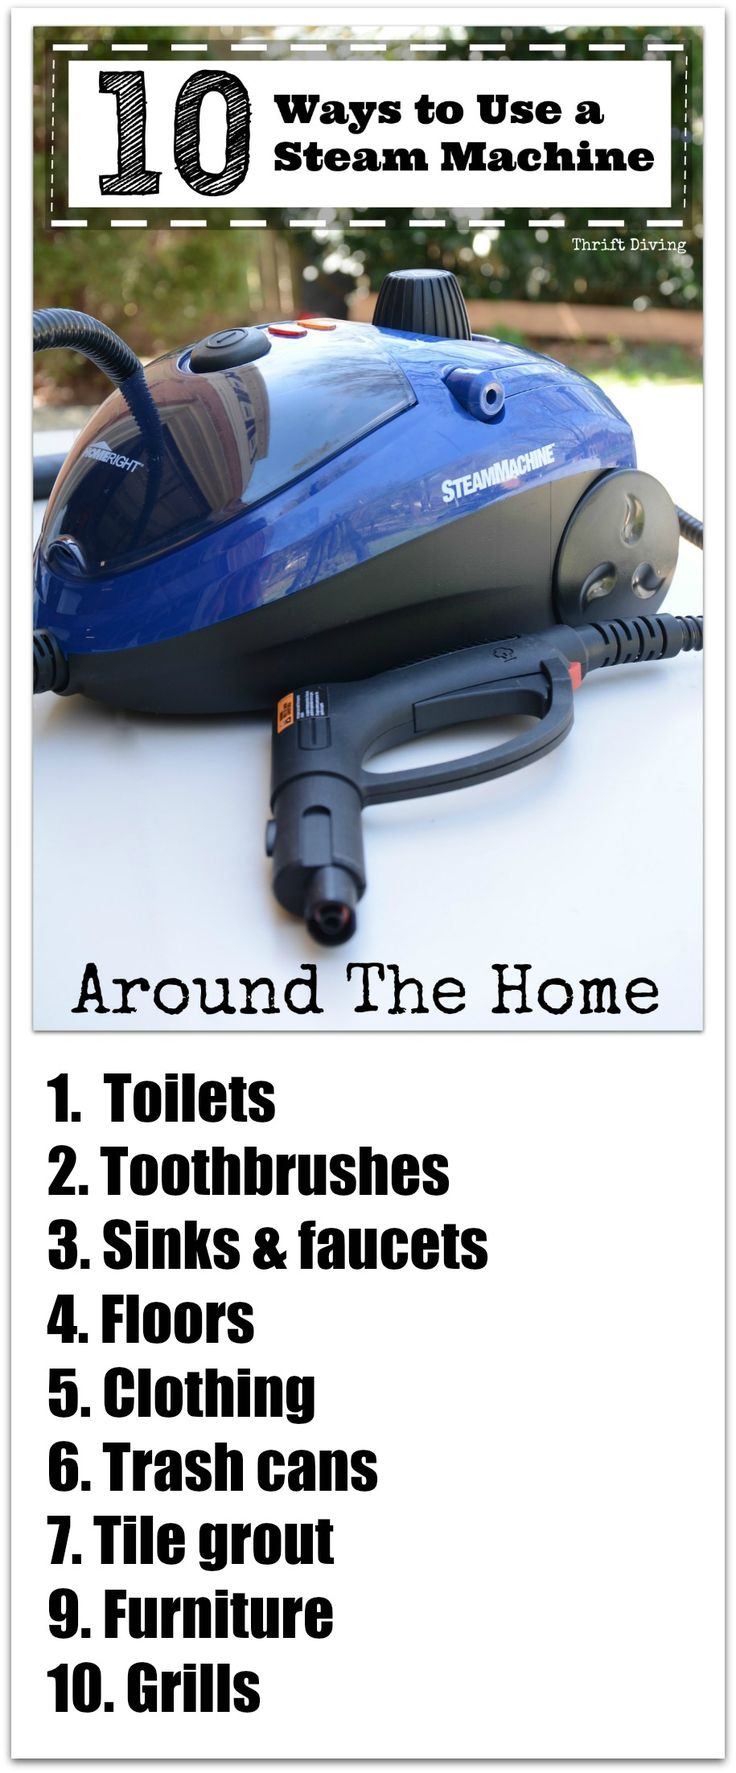 10 Ways to Use a Steam Machine Around the Home - Toilets, toothbrushes, sinks, floors, clothing, trash cans, tile grout, furniture, and grills - Thrift Diving